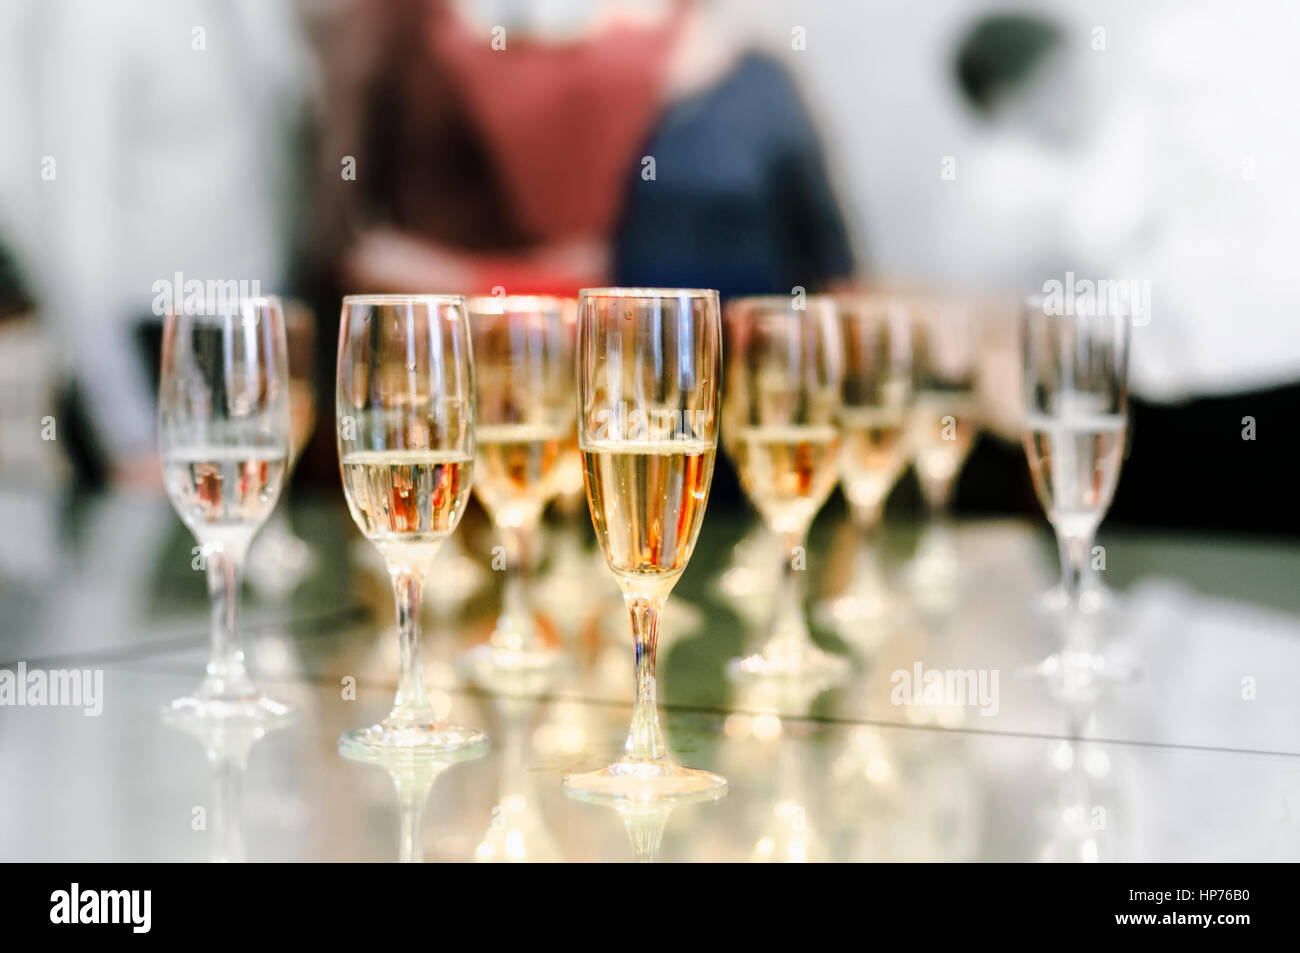 Glasses of champagne on the table - Stock Image